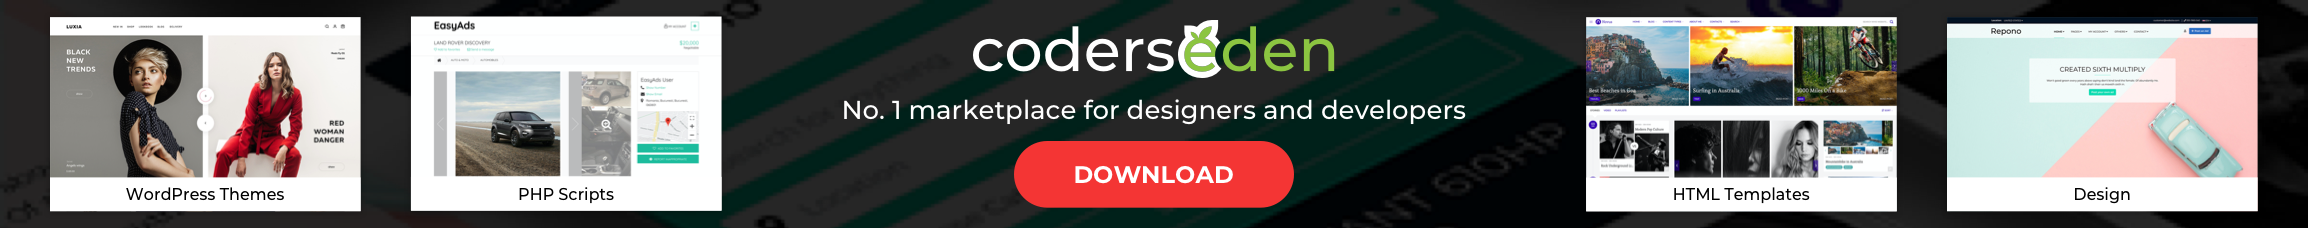 CodersEden Marketplace for designers and developers